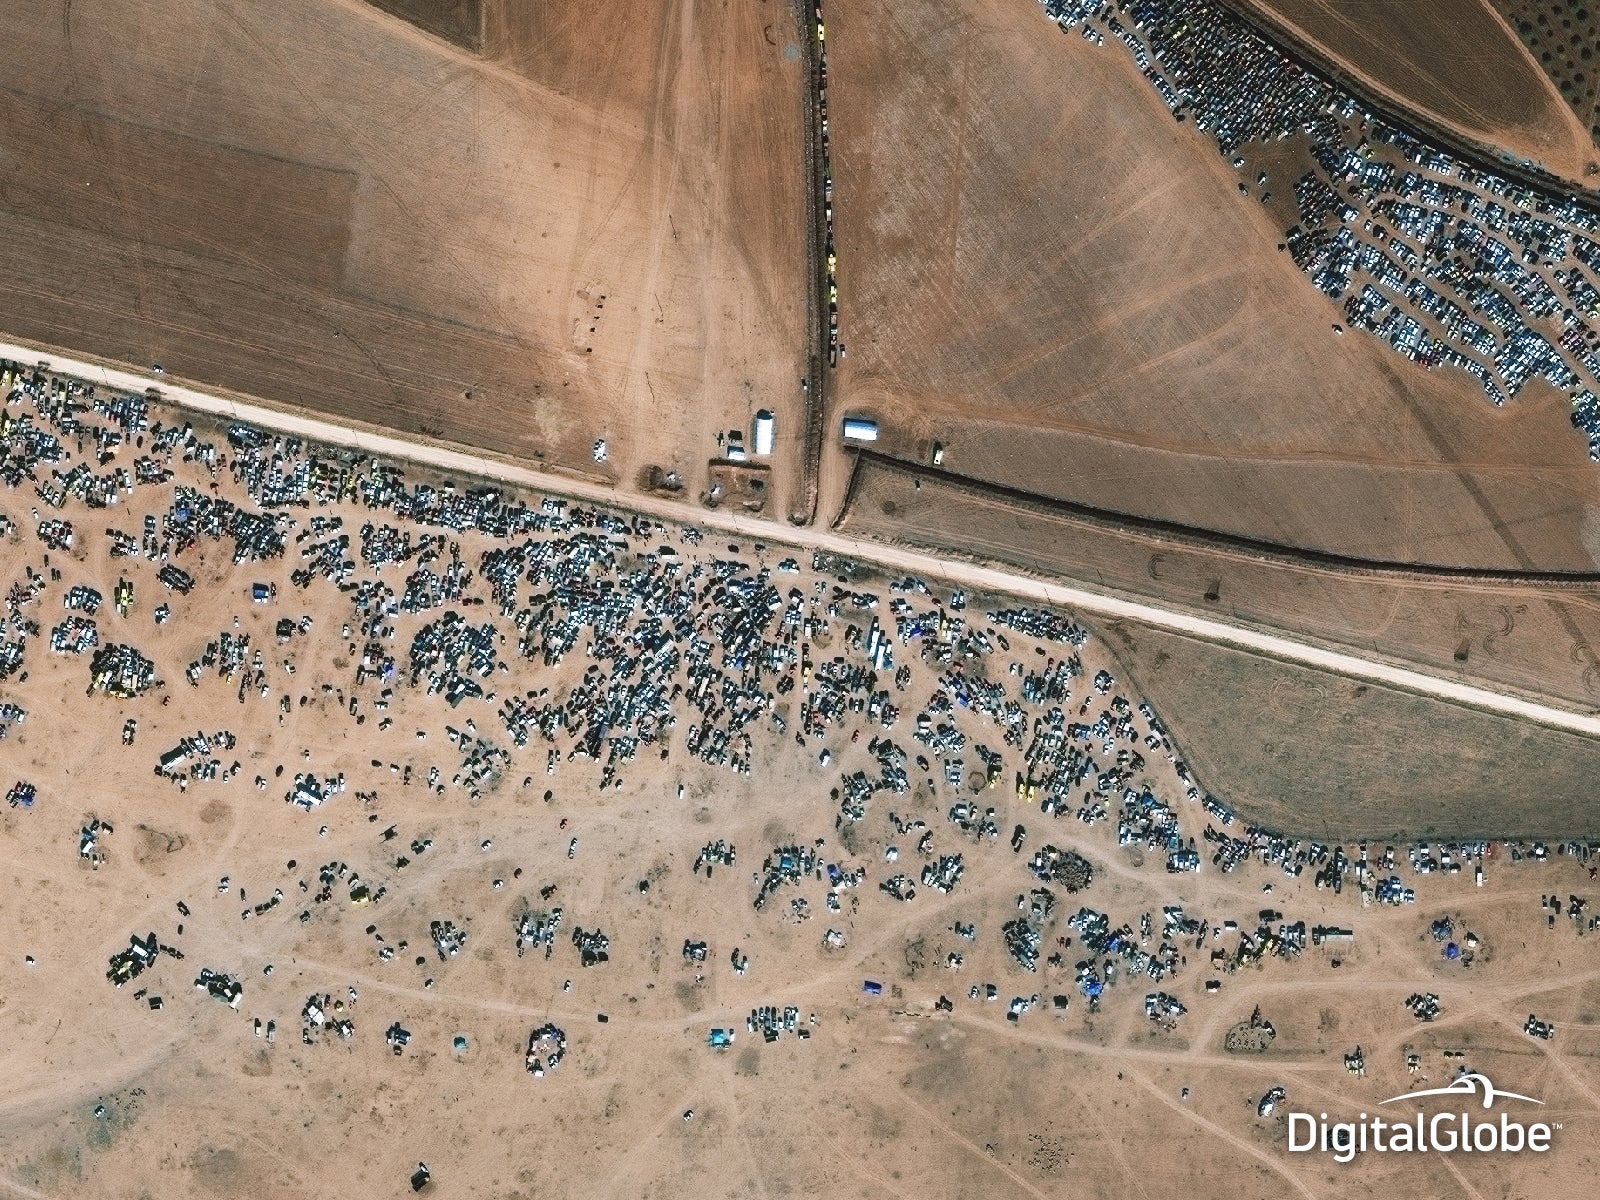 2014 As Told By Photos from the World's Highest Resolution Satellites